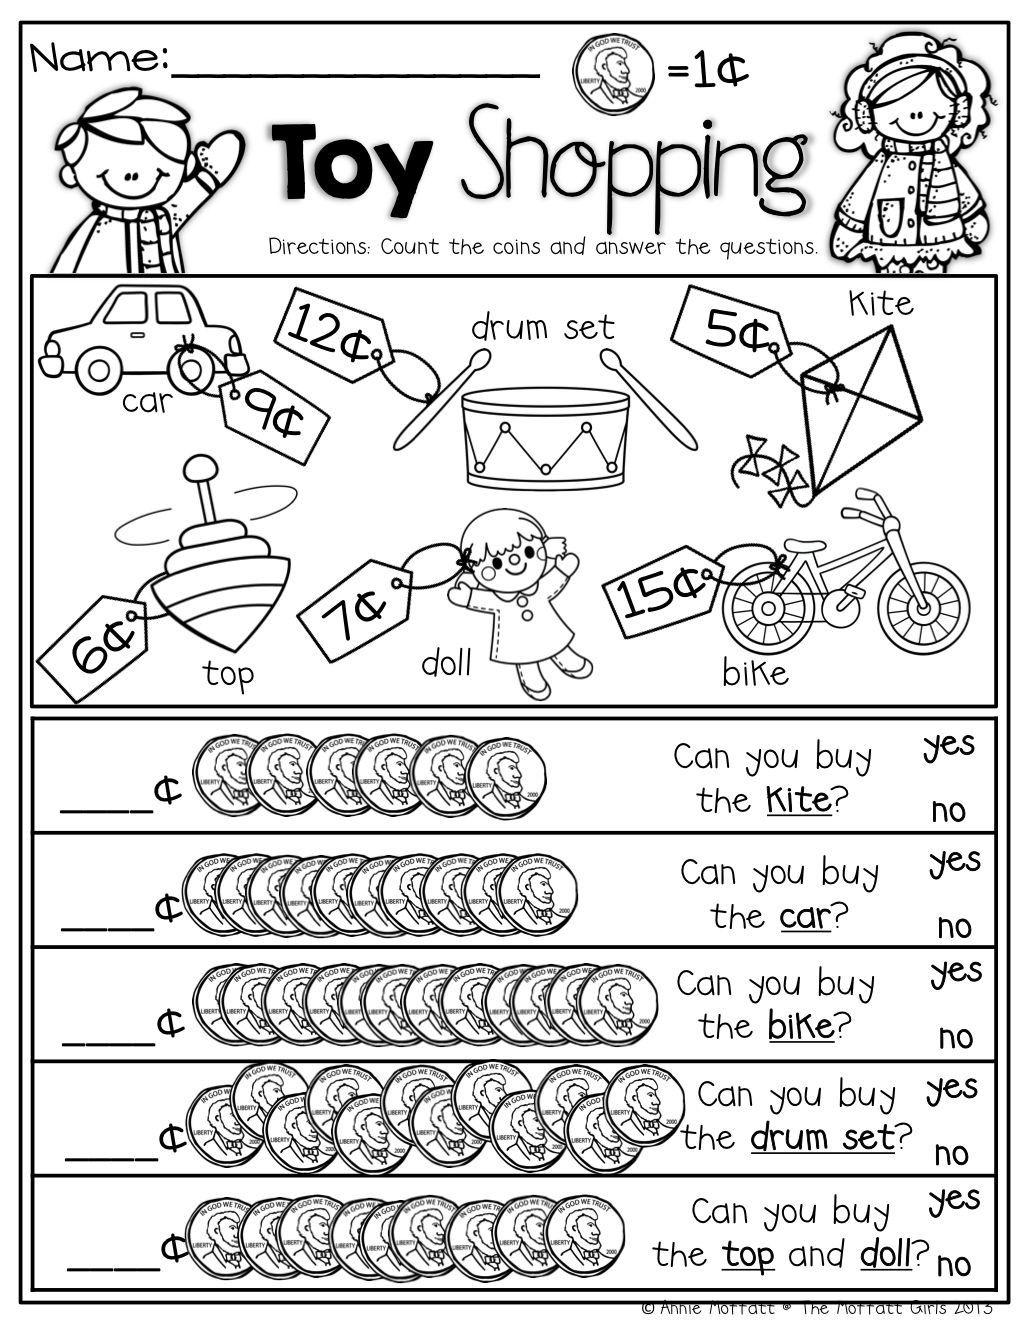 Pin By Sara Gomez On Math First Money Math Learning Math Math Worksheets [ 1325 x 1024 Pixel ]